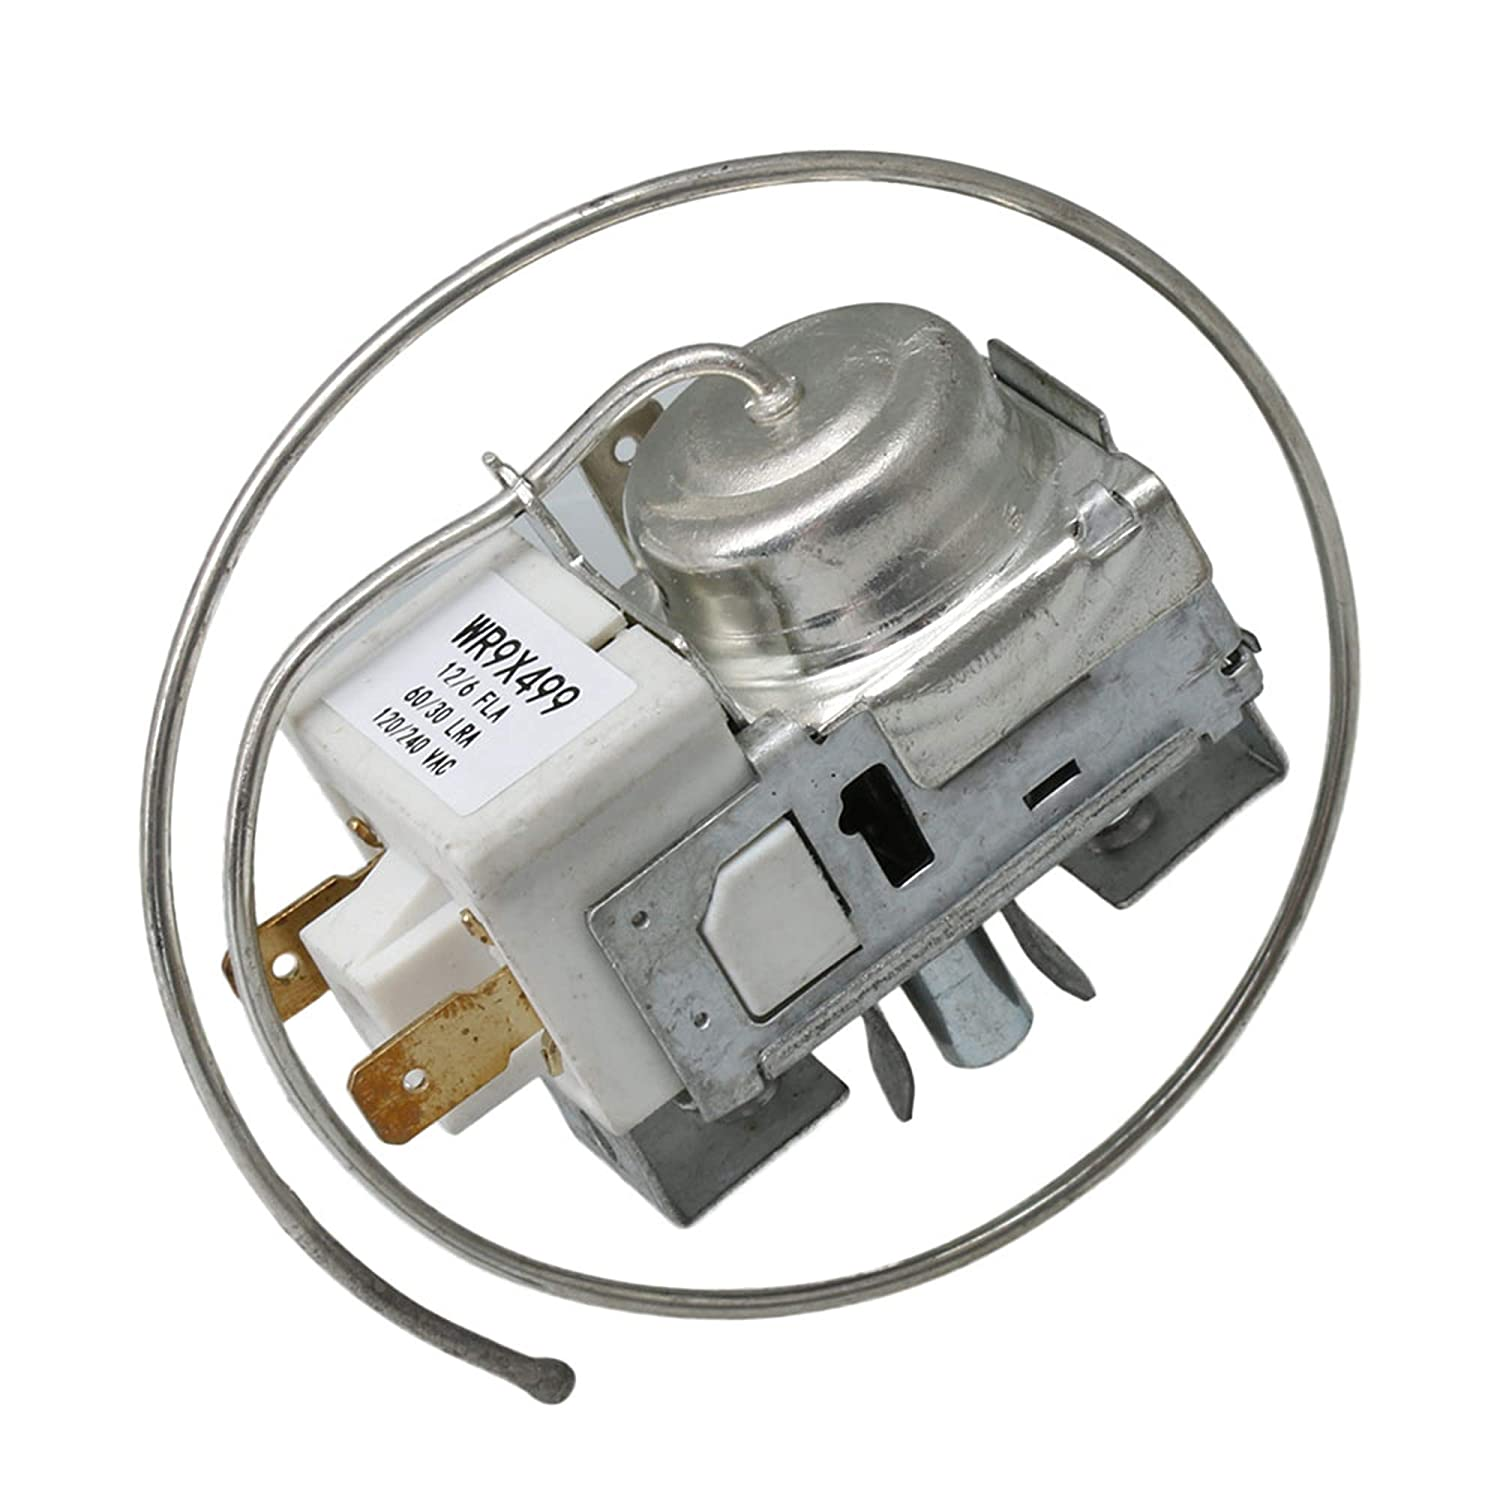 Emptty Sale price WR9X499 Refrigerator Temperature Repla High quality Control Thermostat